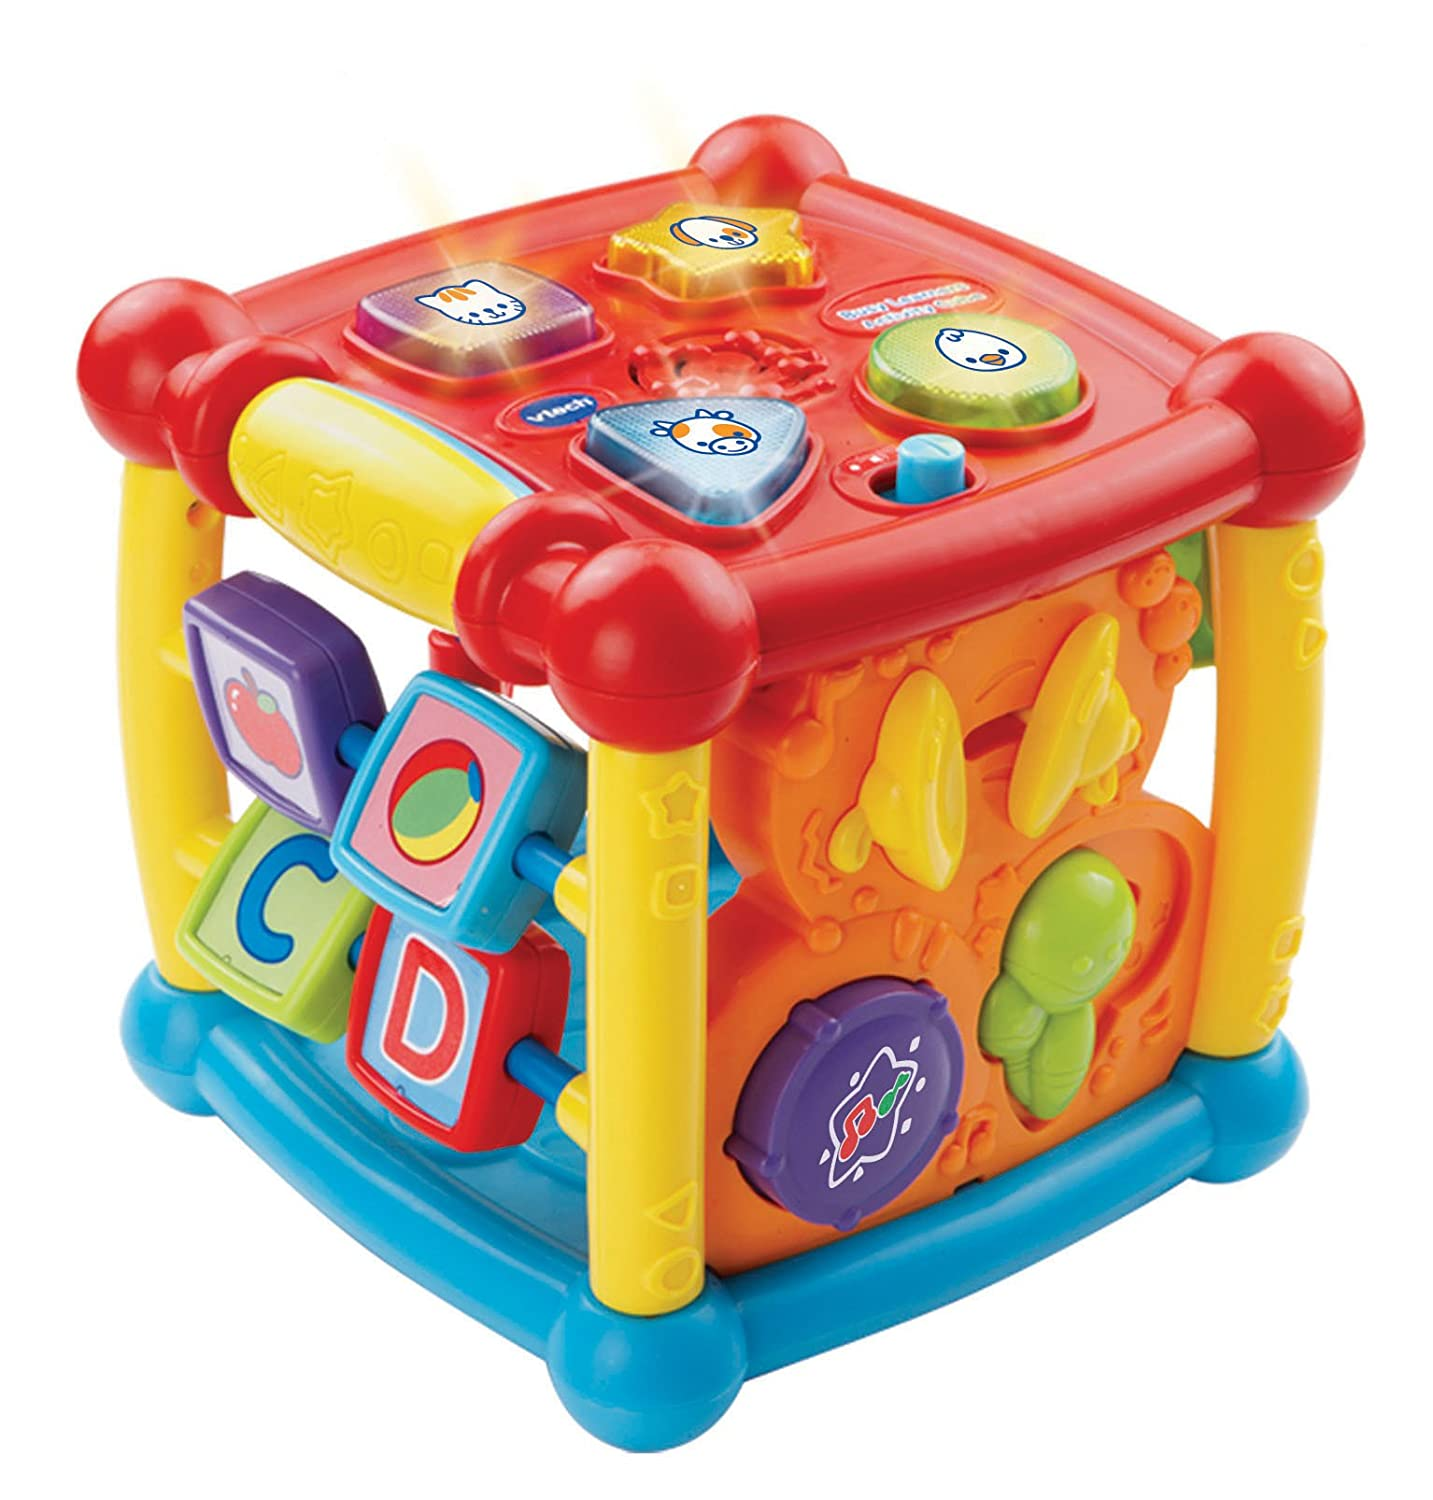 Amazon Early Development Toys Toys & Games Activity Centers